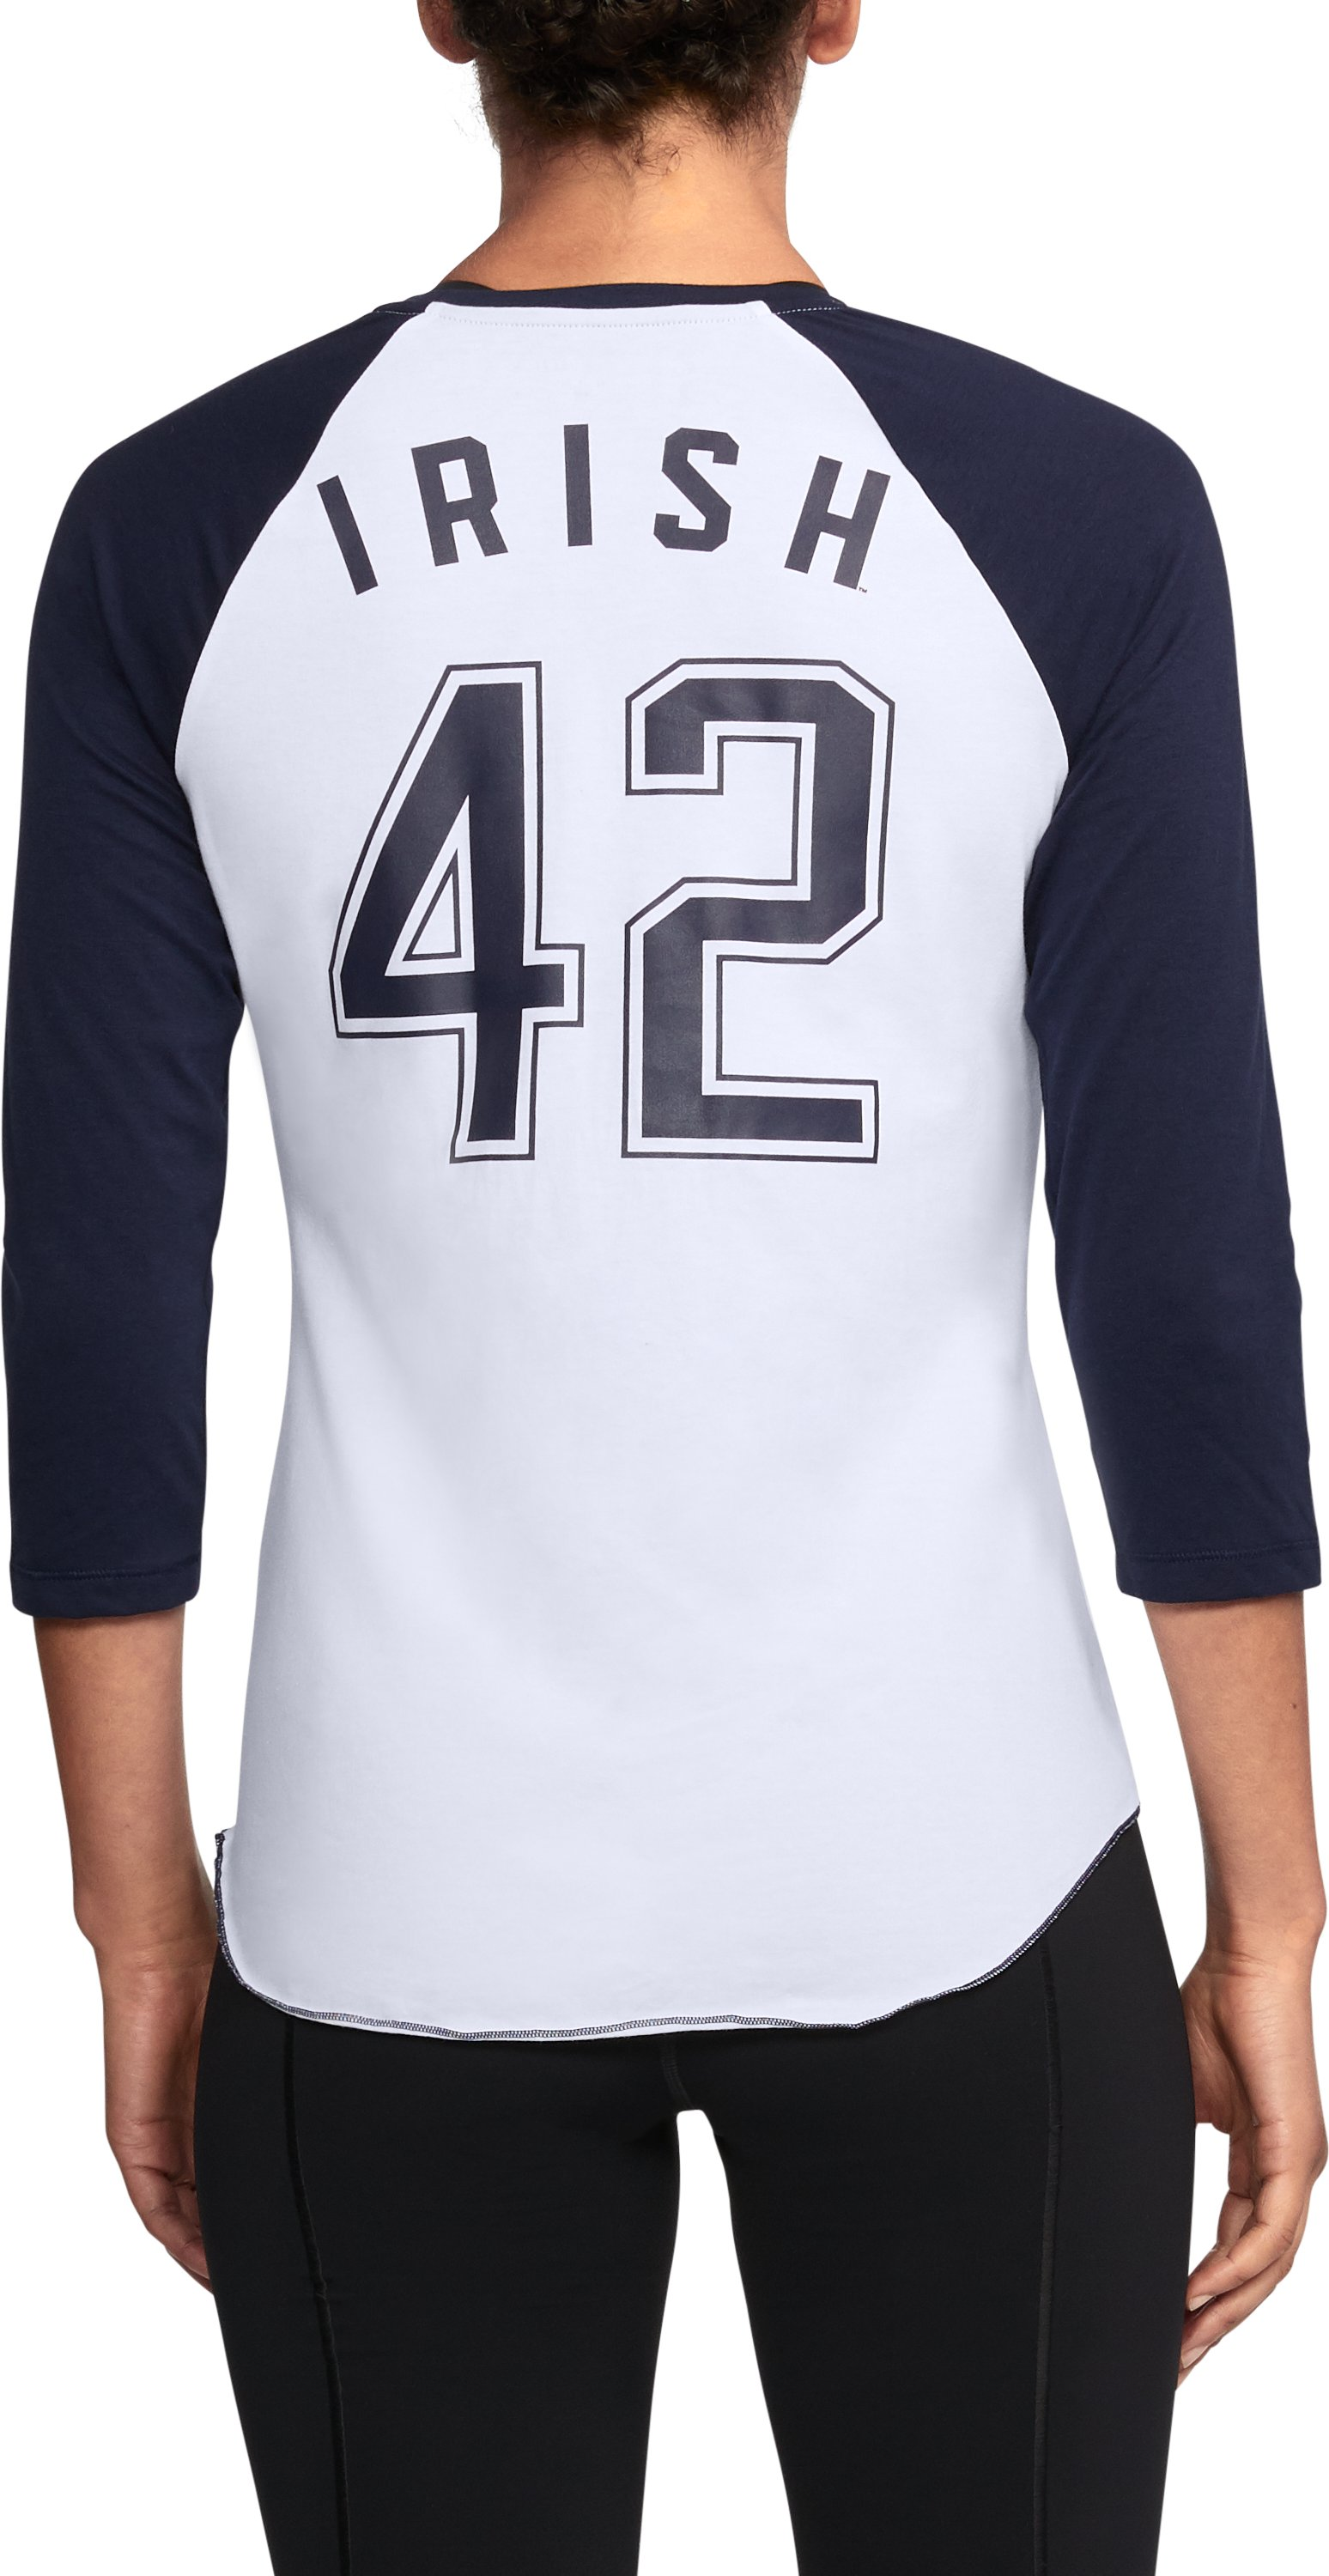 Women's Notre Dame Baseball T-Shirt, Midnight Navy,